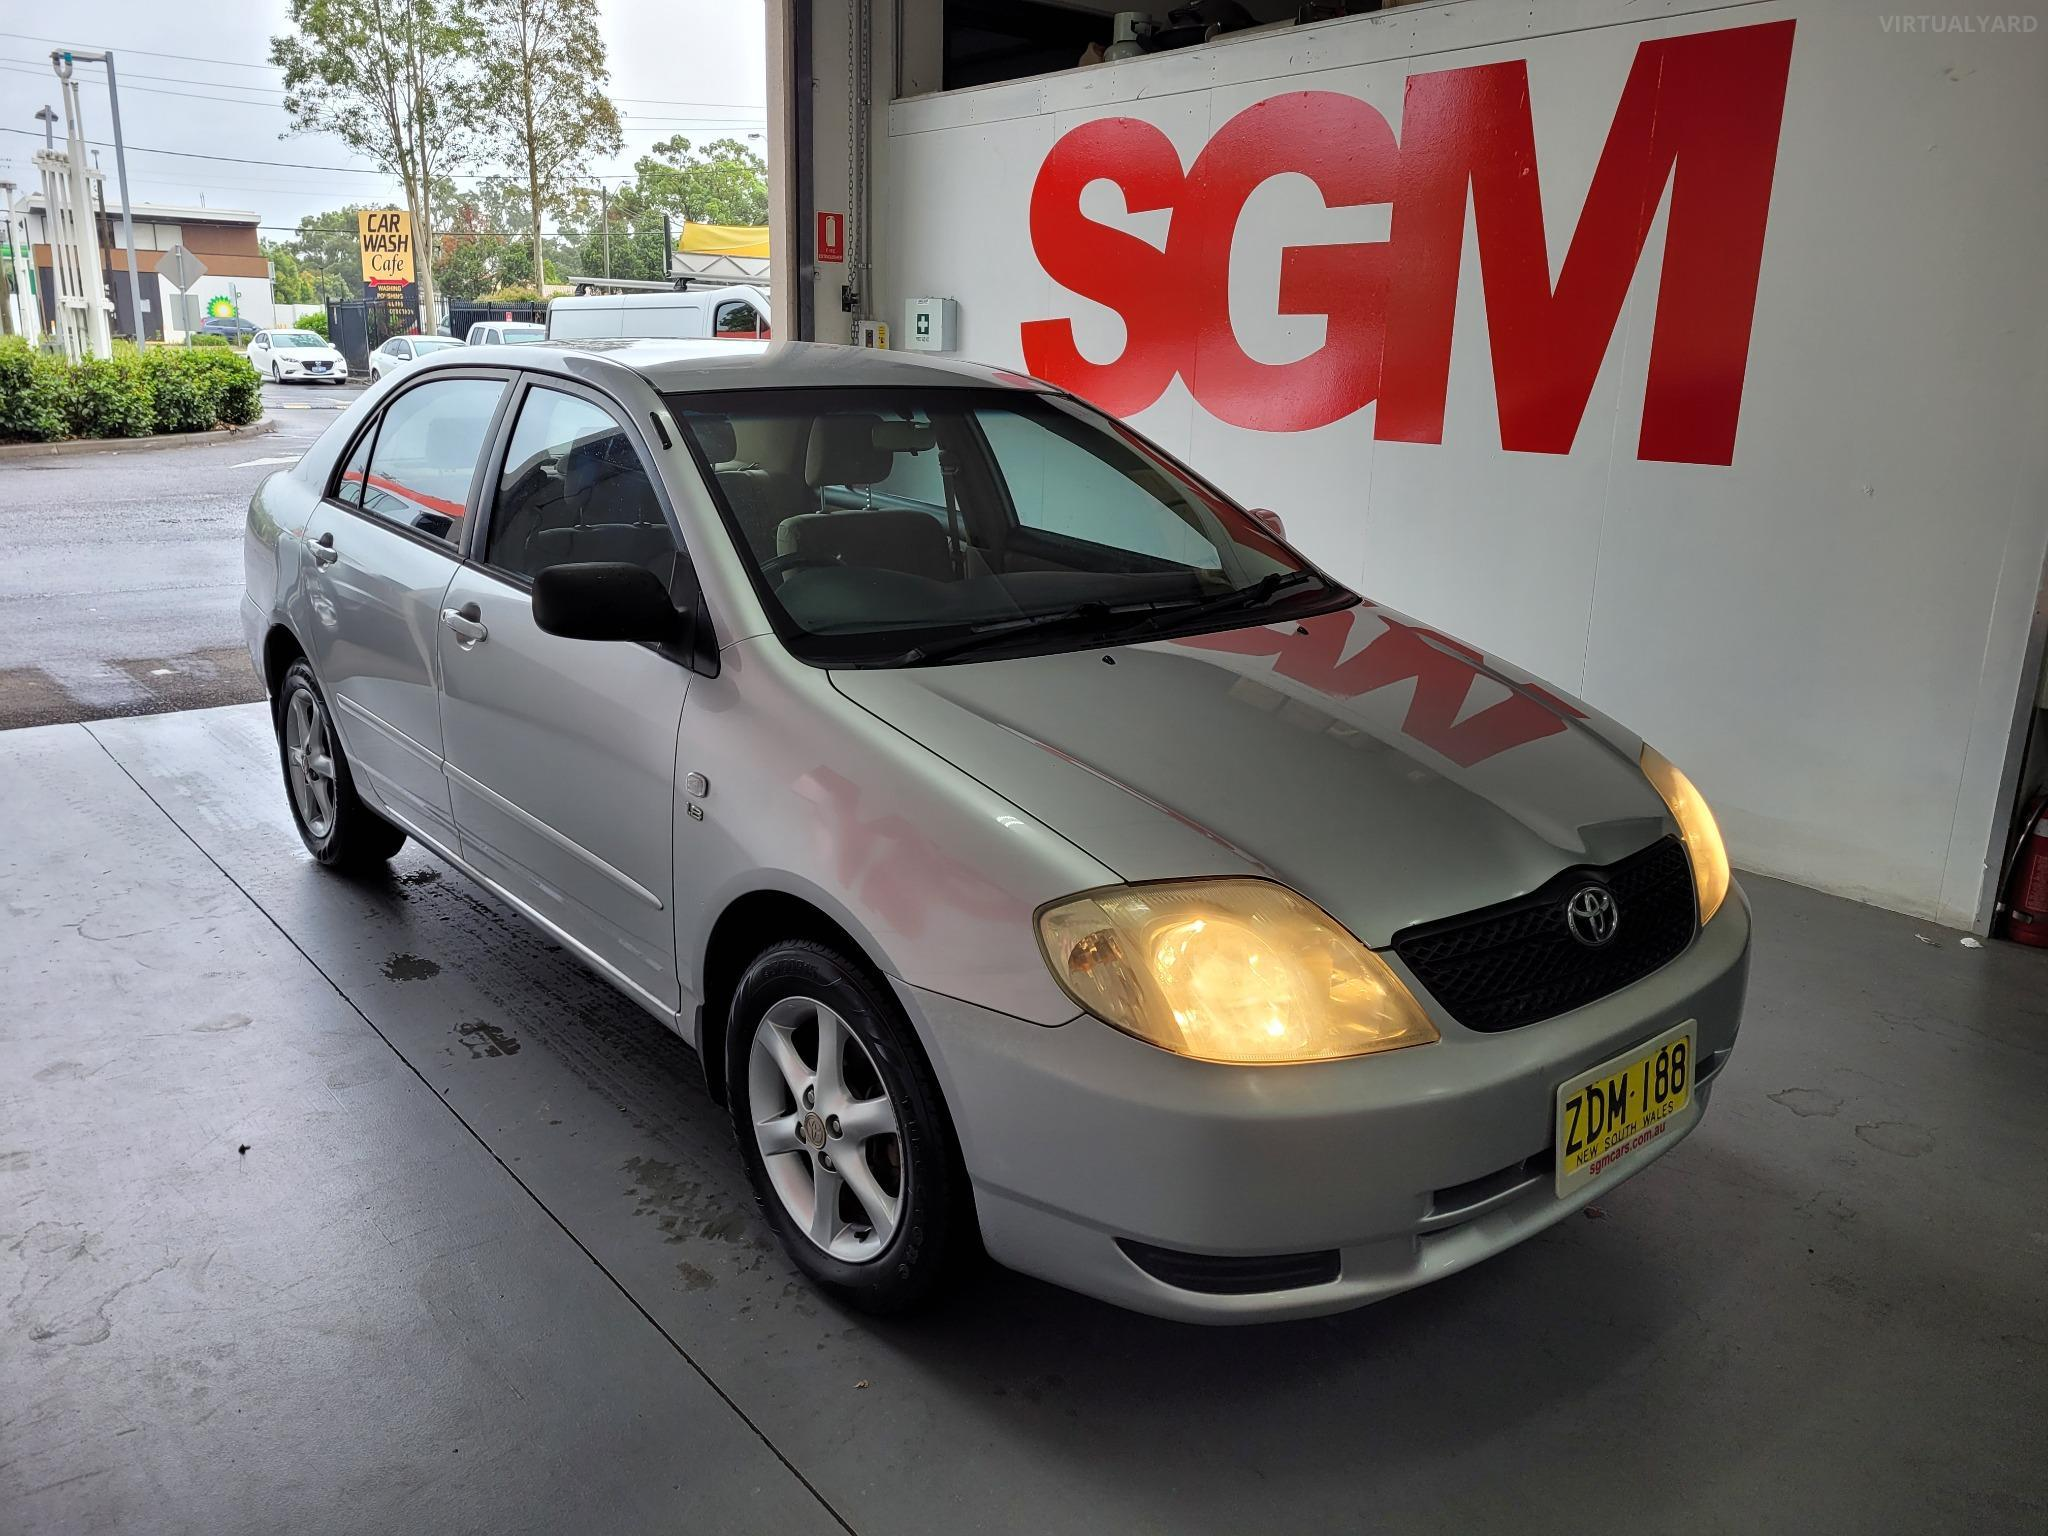 2003 Toyota Corolla ZZE122R 5Y Conquest Sedan 4dr Man 5sp 1.8i Picture 8